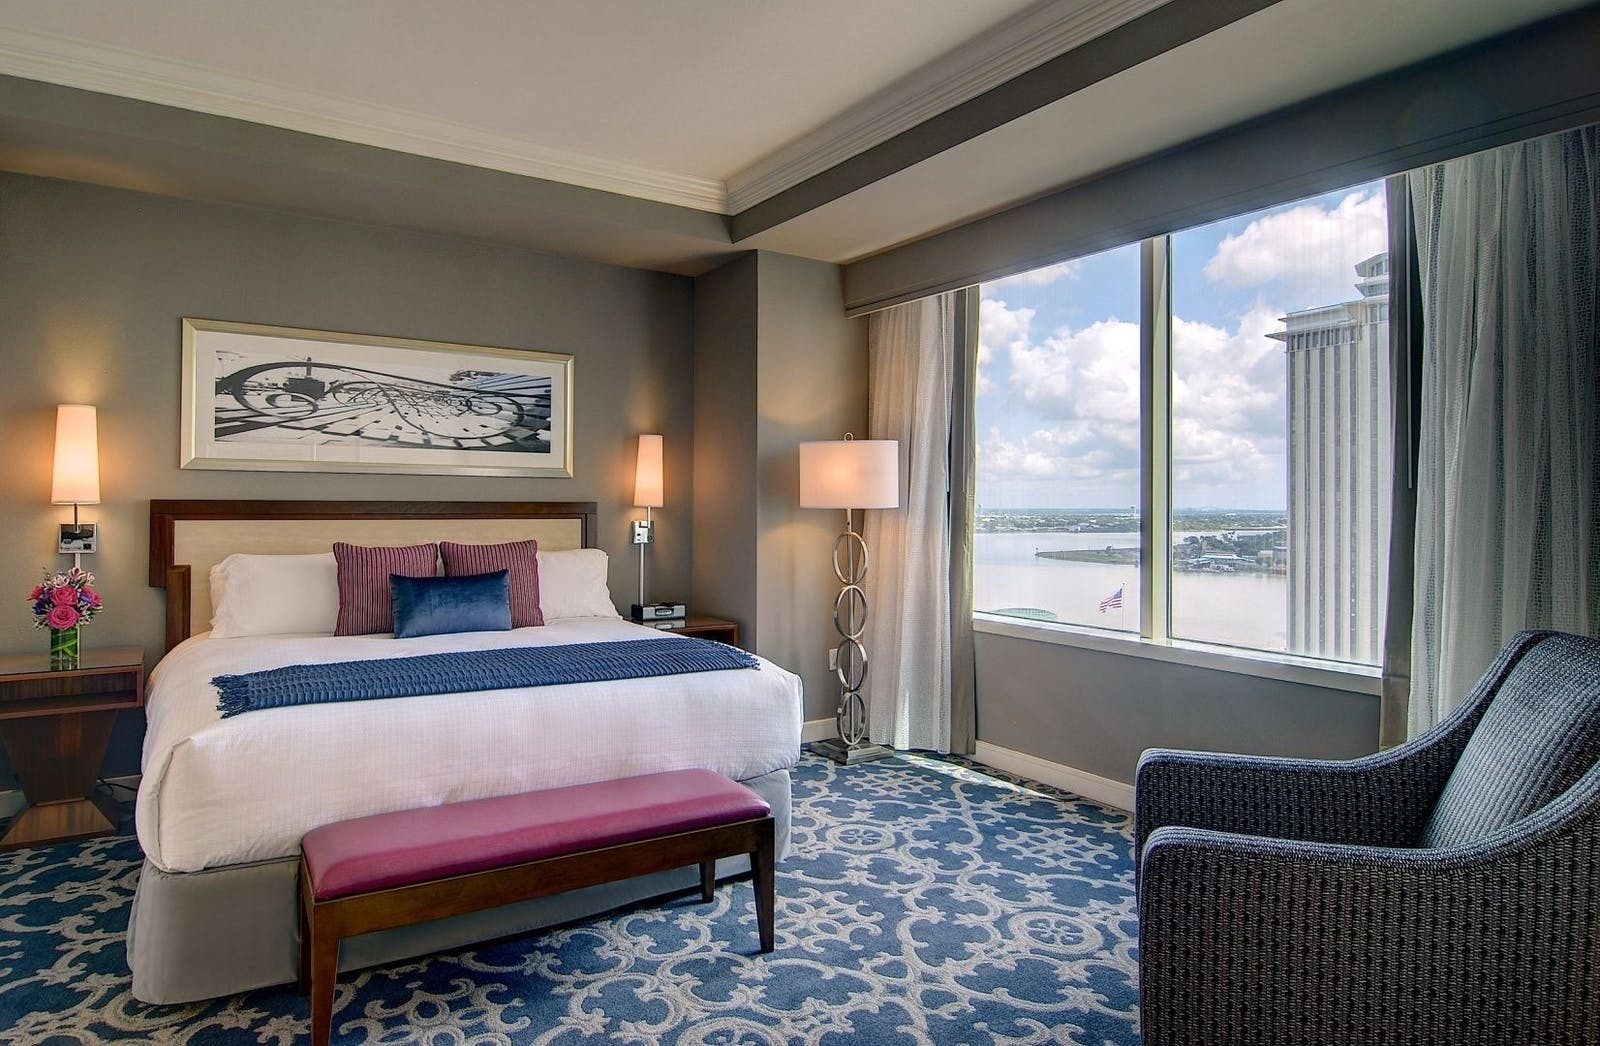 Grand King Suite at Loews, New Orleans